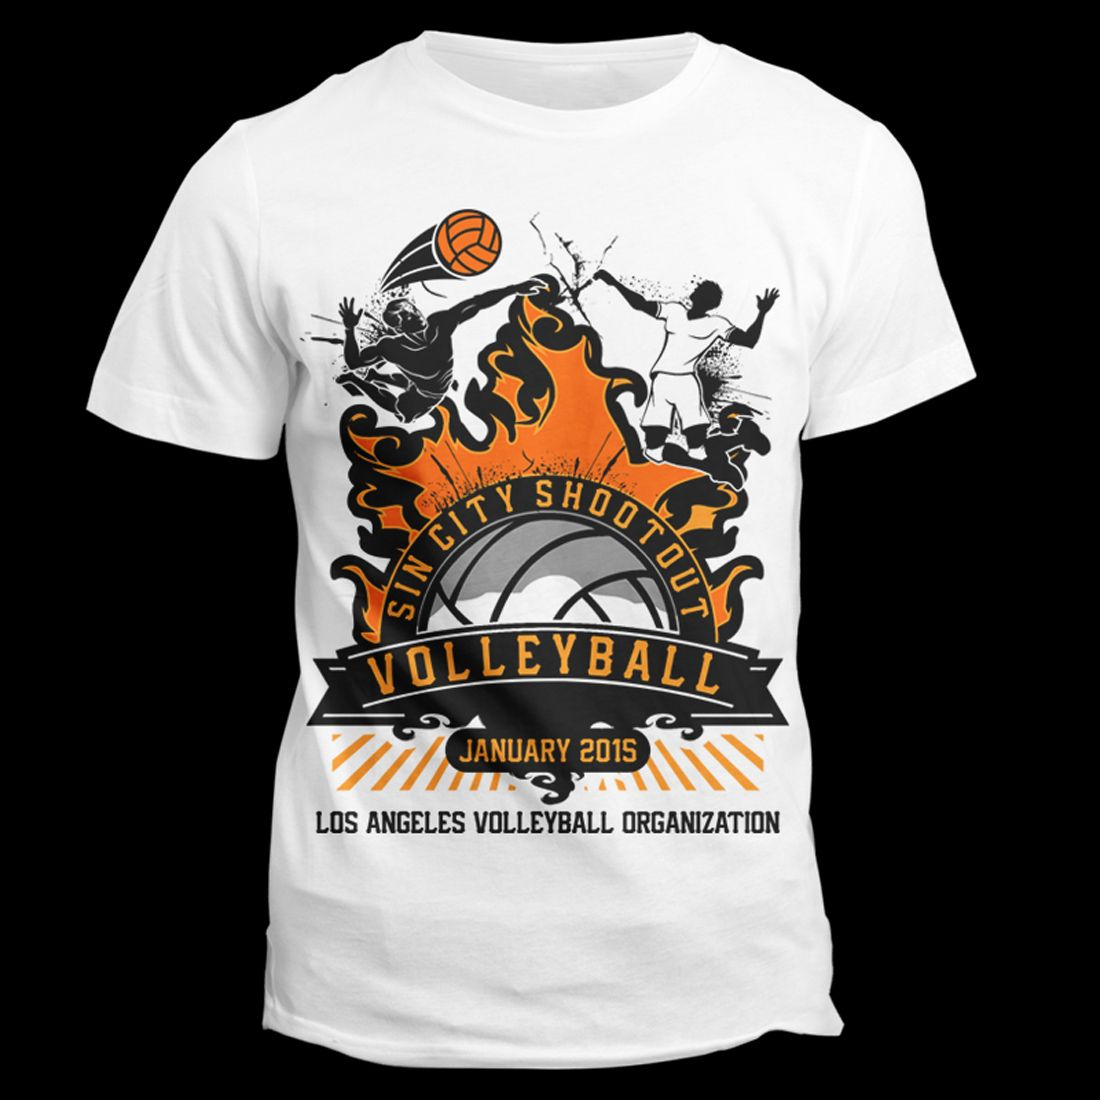 Belasrisoufiane I Will Create An Awesome Tshirt Design For 10 On Fiverr Com Tshirt Designs Shirt Designs Cool Tee Shirts